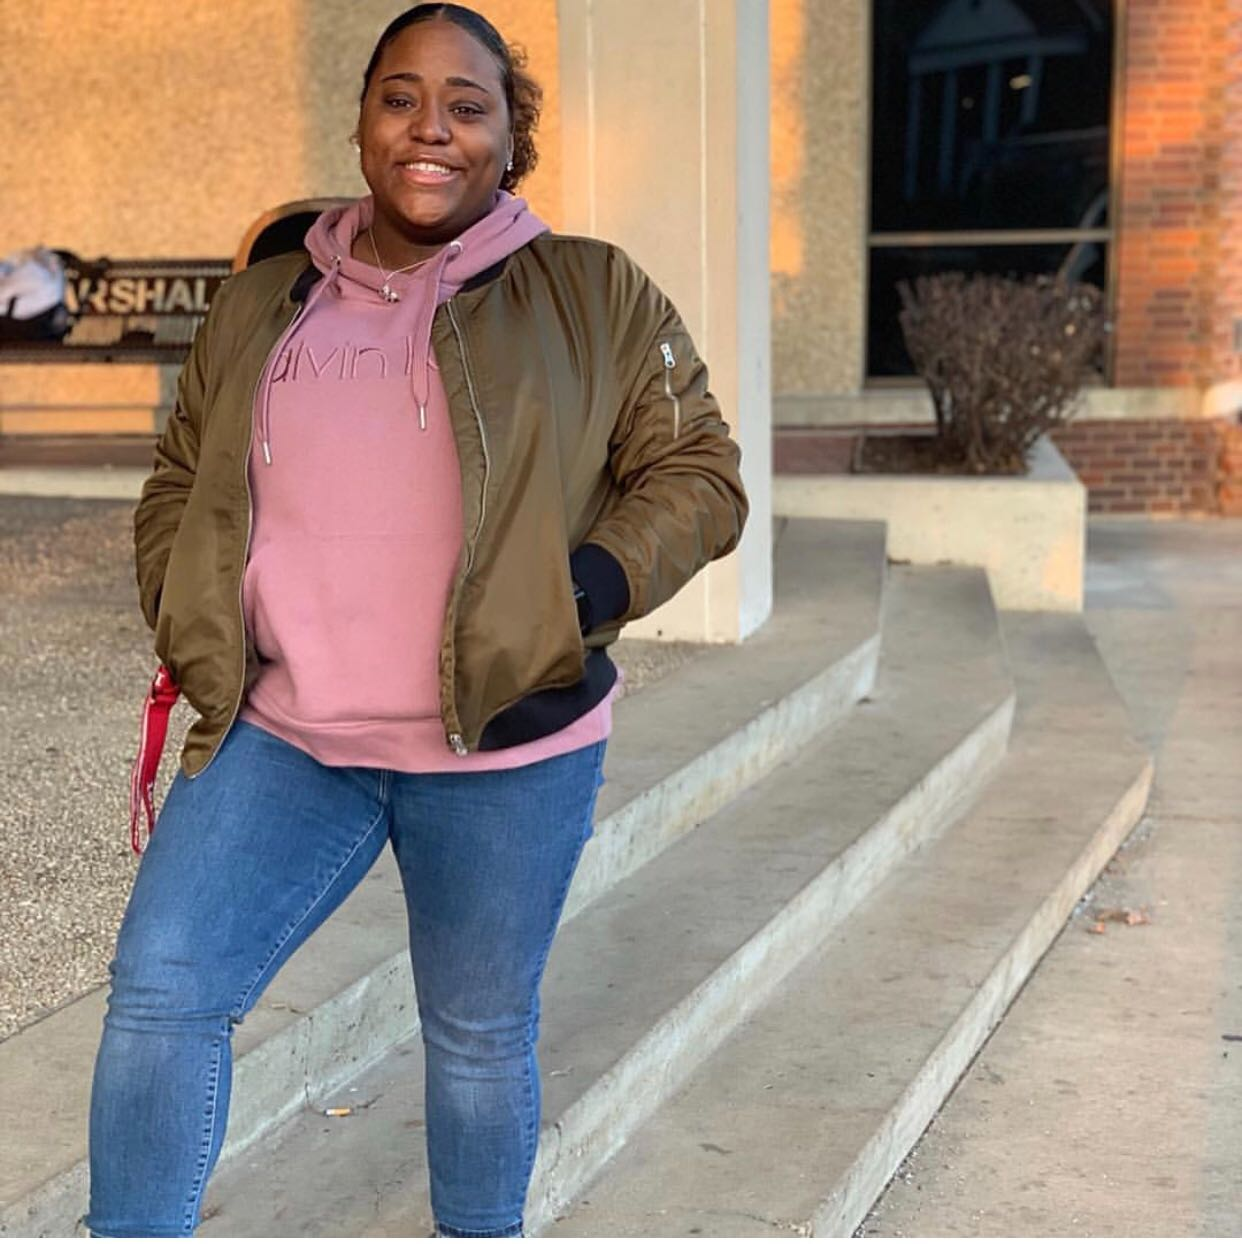 Senior Zaire Chester a is president of a Delta Sigma Theta Sorority Incorporated chapter, a West Virginia state facilitator for Delta Sigma Theta and a member of Marshall's Black United Students, Young Democrats and Pre-Law Club.